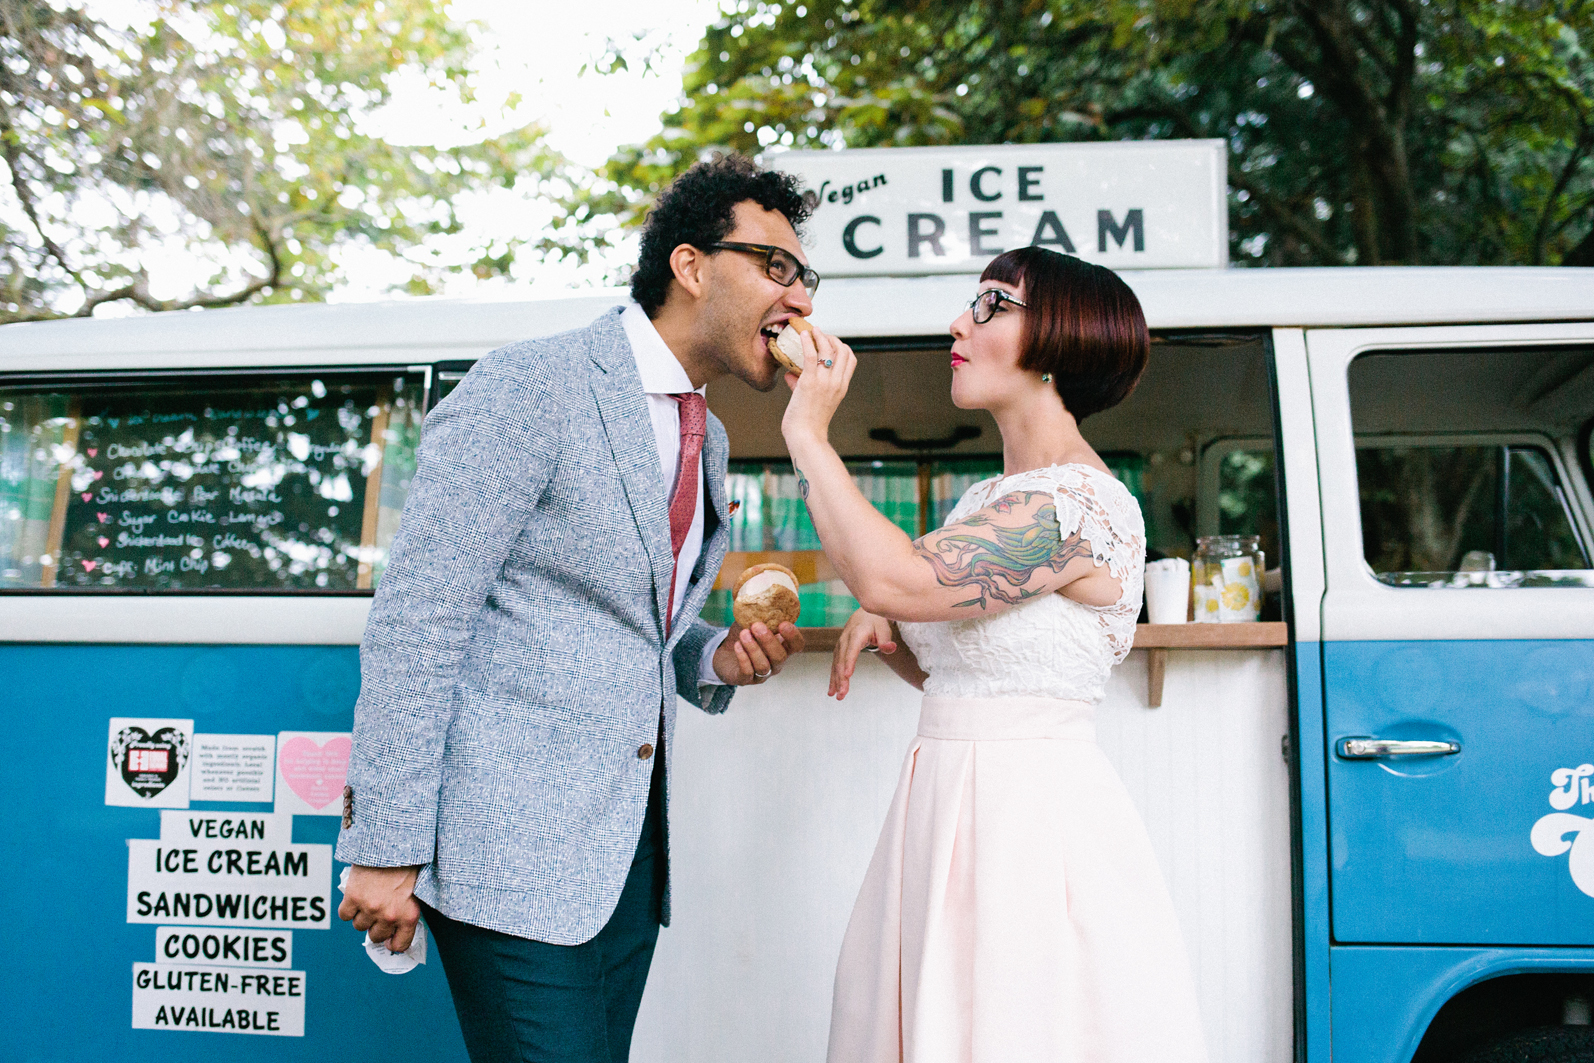 Ice Cream Cookie service from Seattle Cookie Counter at a Volunteer Park Conservatory Elopement.